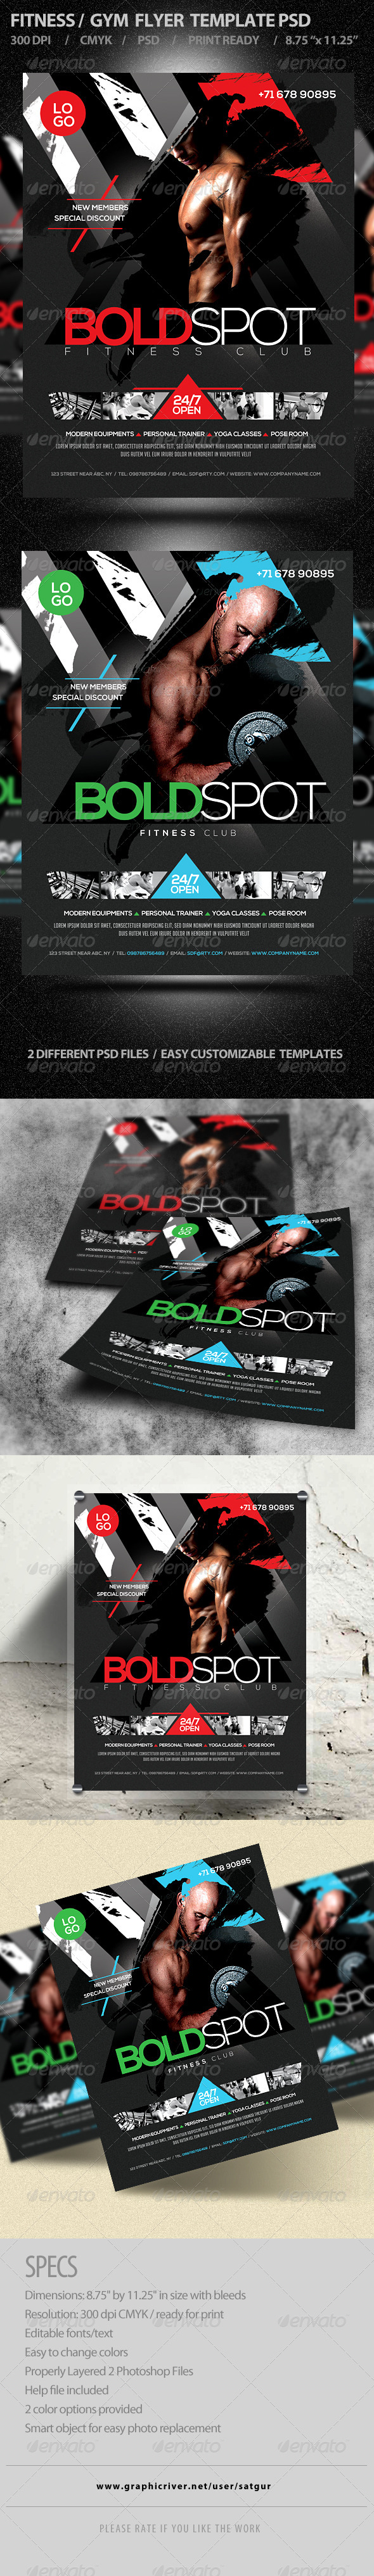 Fitness Flyer /Gym Flyer Template PSD V7